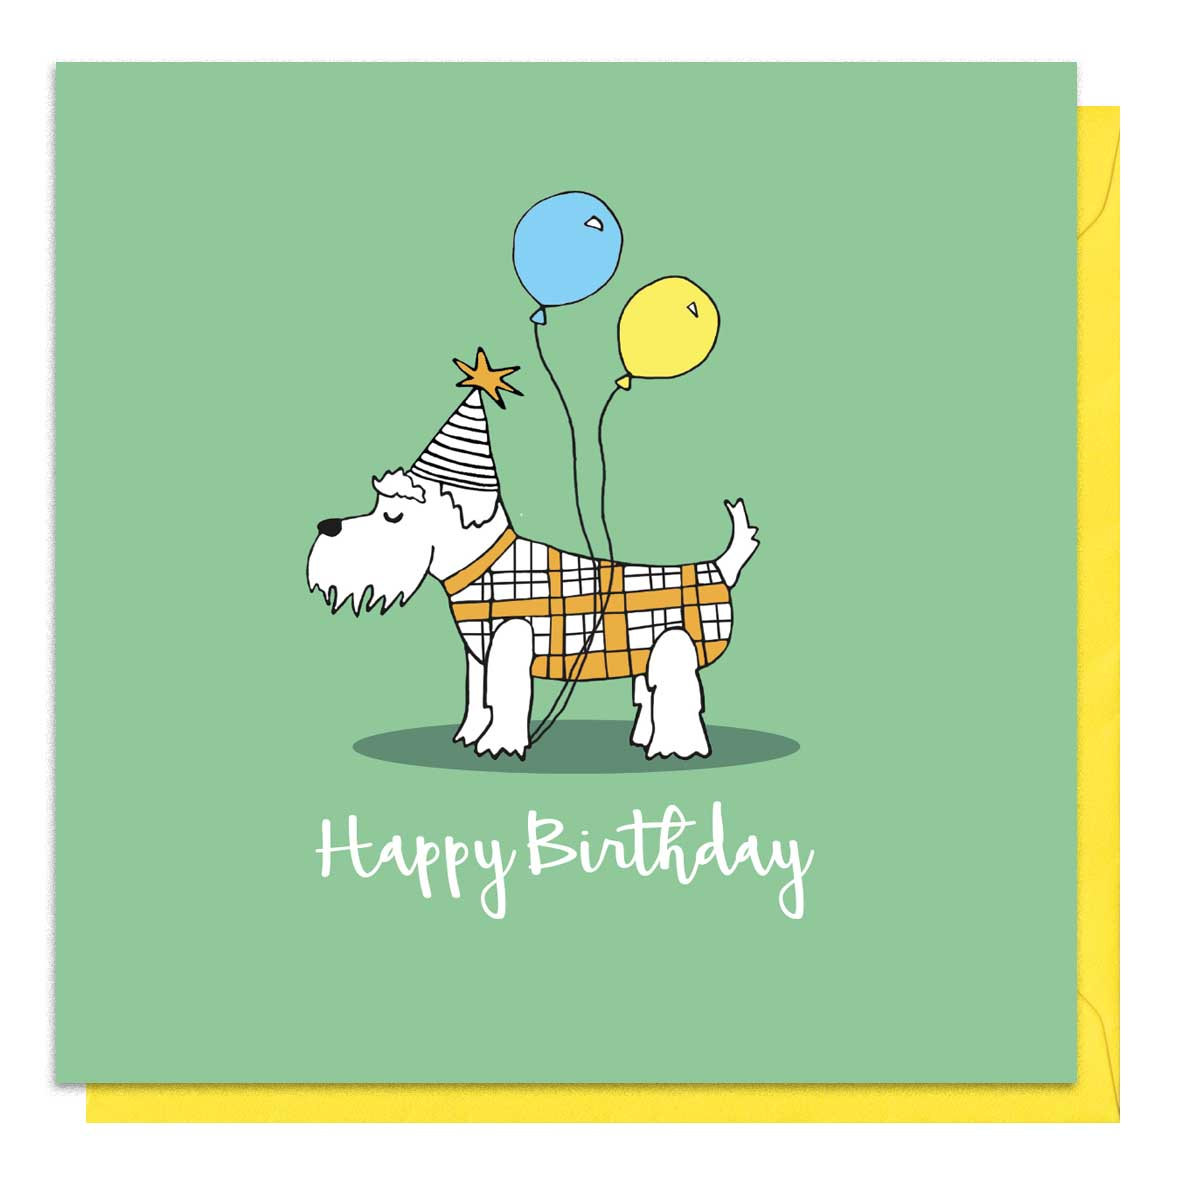 Green birthday card with an illustration of a schnauzer